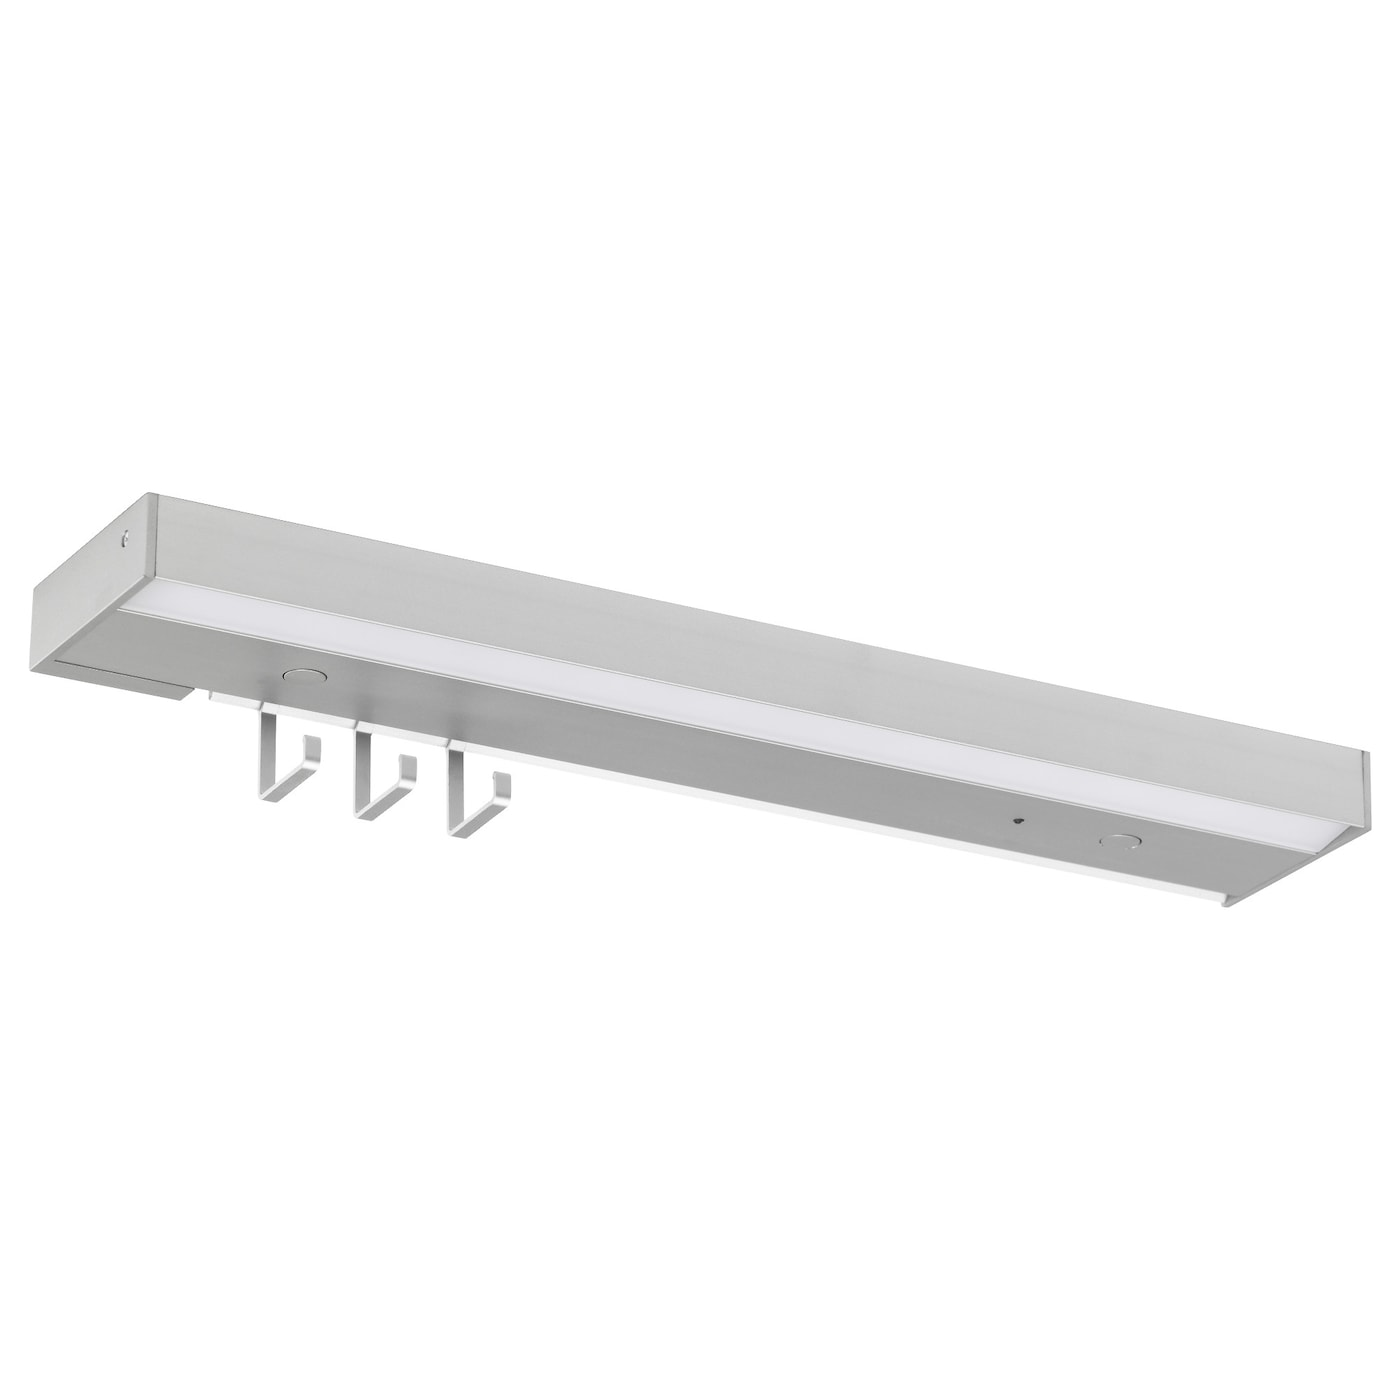 UTRUSTA LED worktop lighting w power supply Aluminium colour 40 cm  IKEA